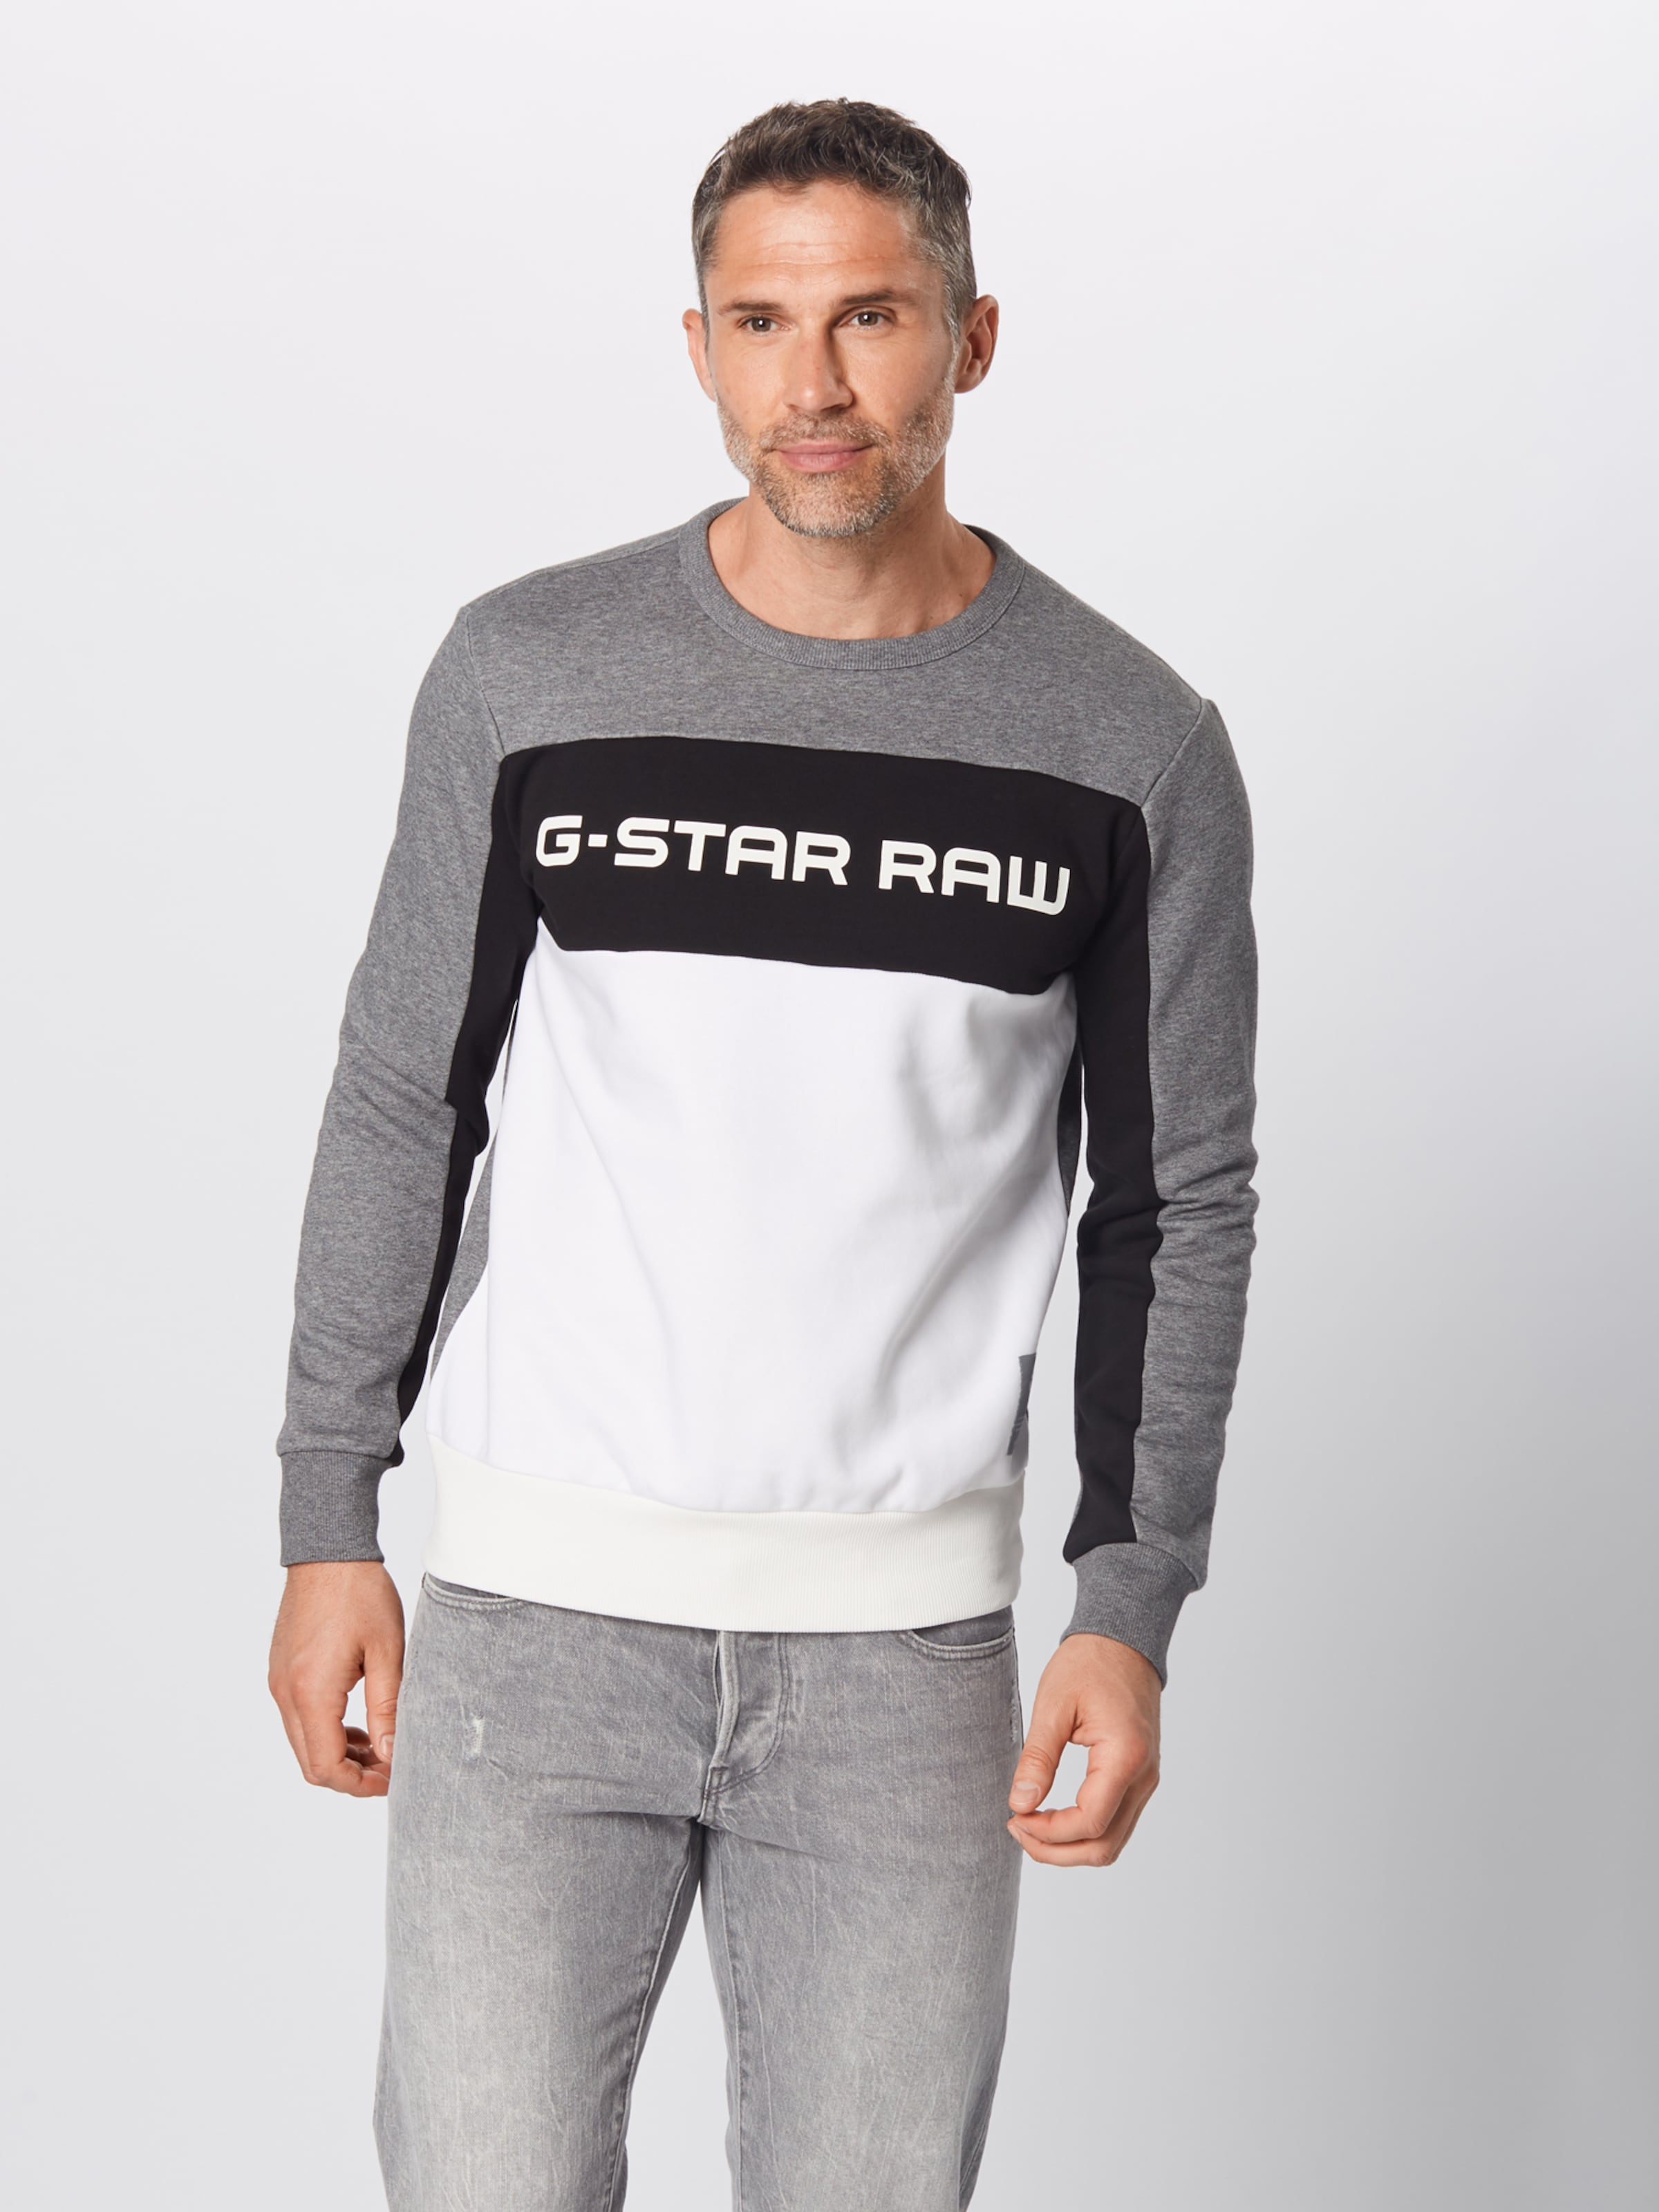 Sweat Block' 'swando Blanc Raw New shirt En star ChinéNoir G Gris jLRSc534Aq